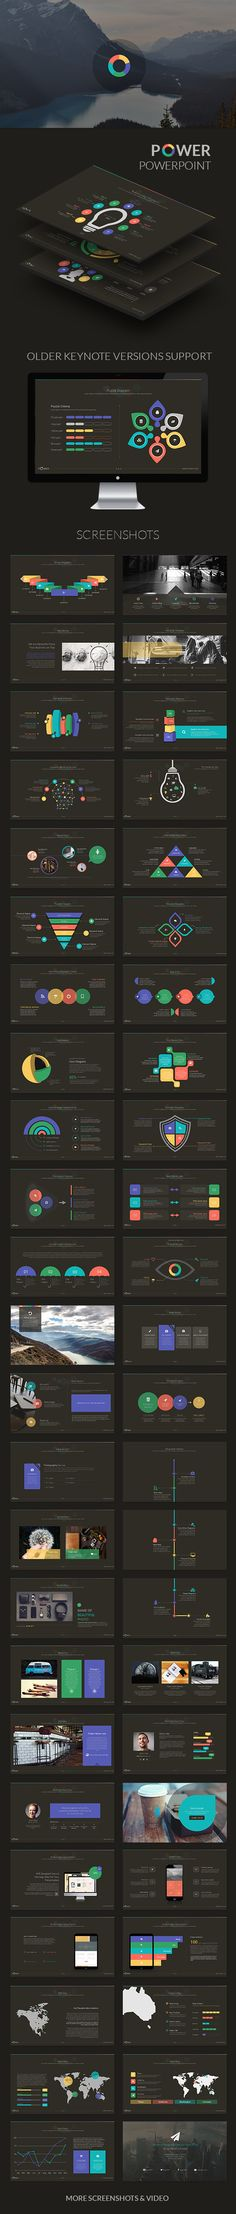 Power | Powerpoint Template - Business PowerPoint Templates